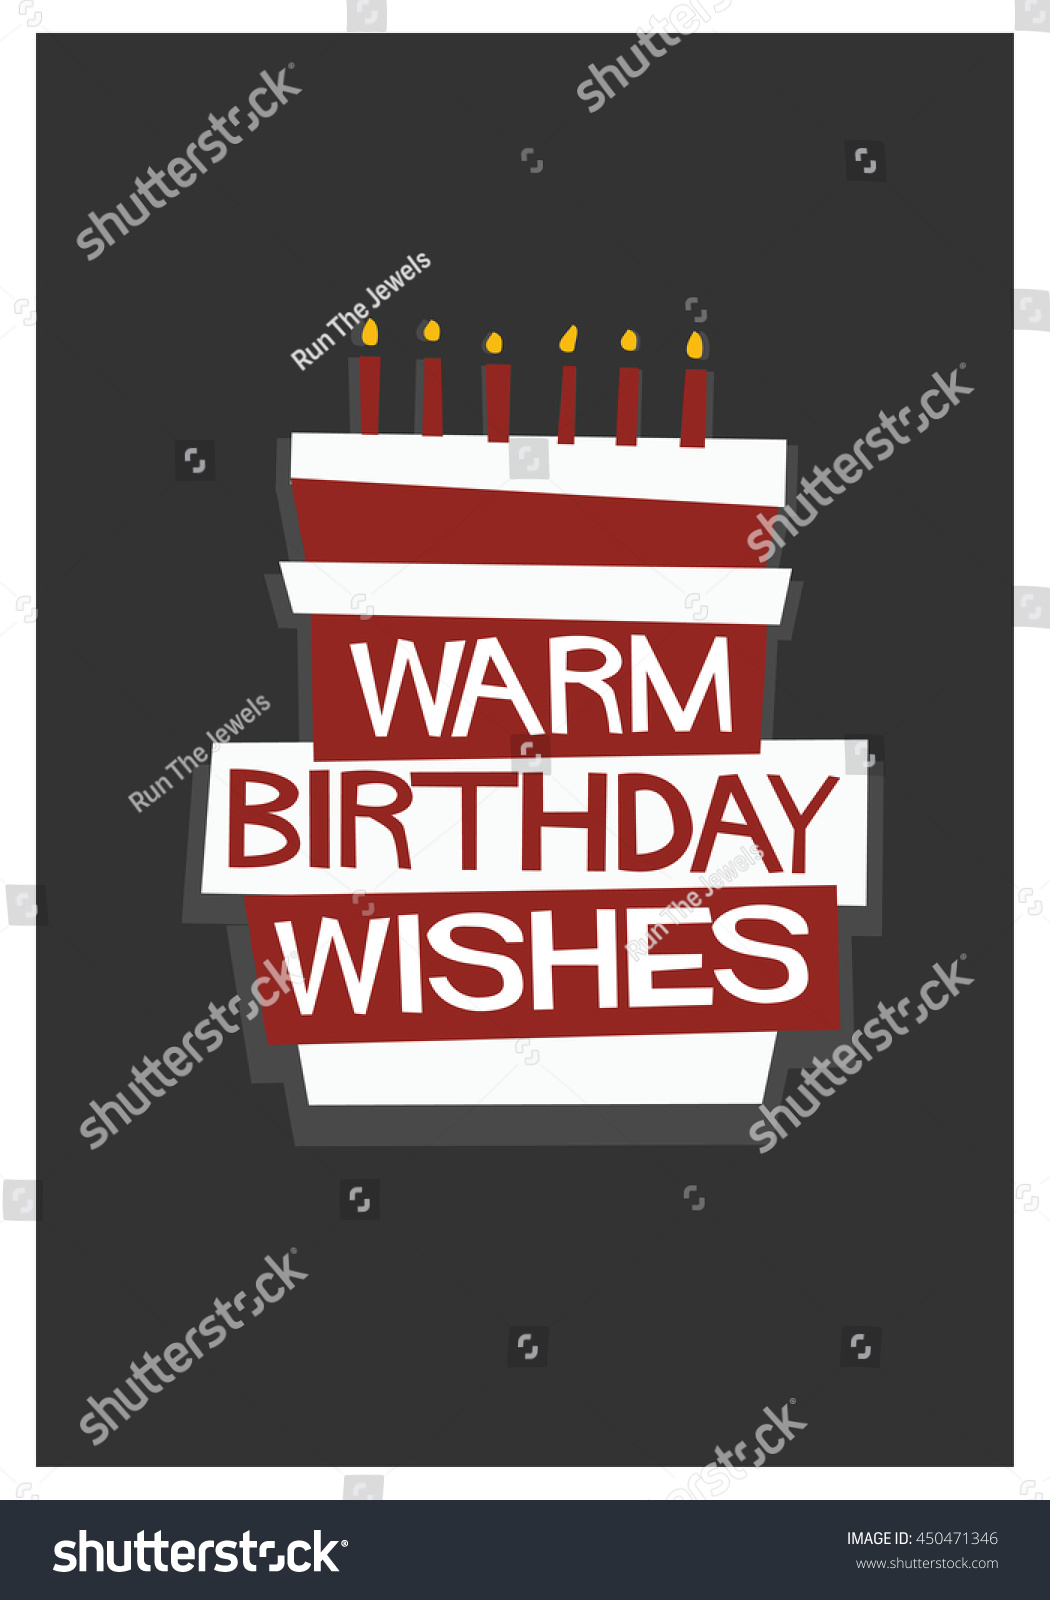 birthday wishes poster making ; stock-vector--warm-birthday-wishes-written-on-a-cake-vector-illustration-in-flat-style-poster-design-450471346